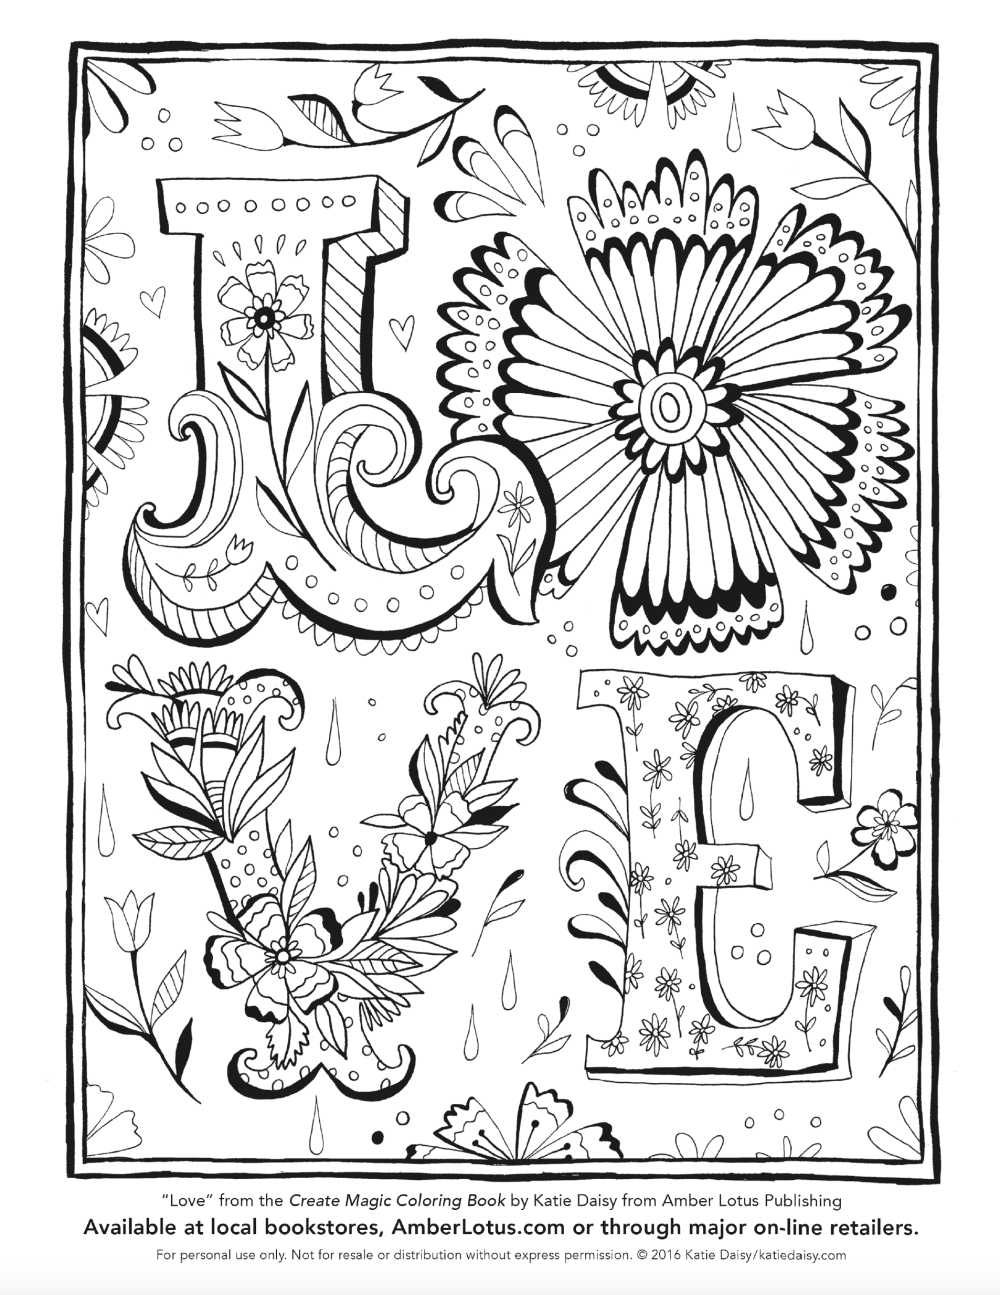 Lotus designs coloring book - Love Coloring Page By Katie Daisy From The Create Magic Coloring Book